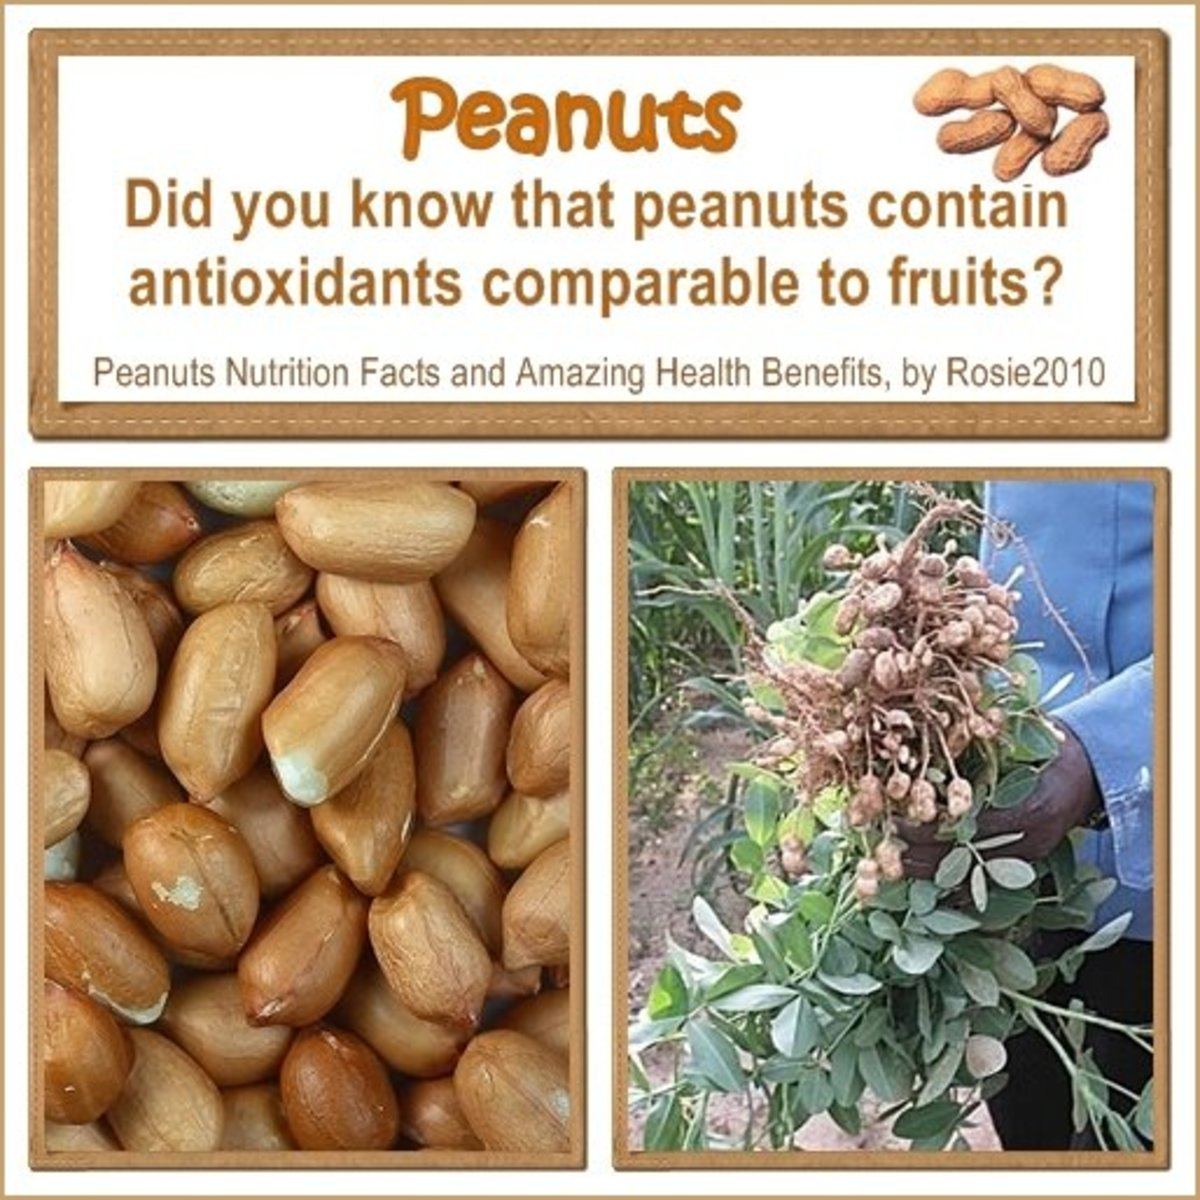 - Peanuts Nutrition Facts and Amazing Health Benefits, by Rosie2010 -